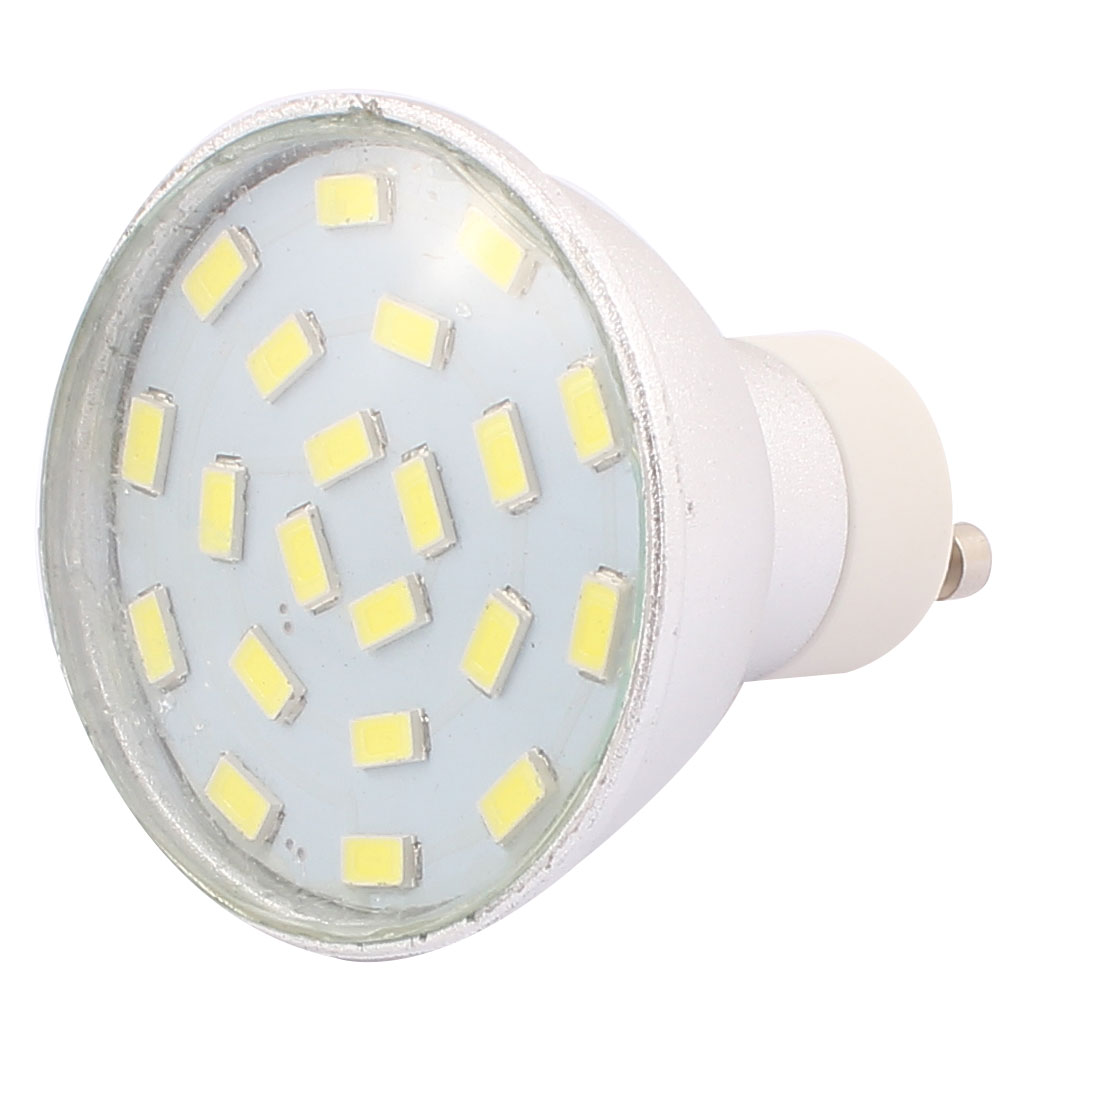 220V-240V GU10 LED Light 3W 5730 SMD 21 LEDs Spotlight Down Lamp Bulb Energy Saving Pure White